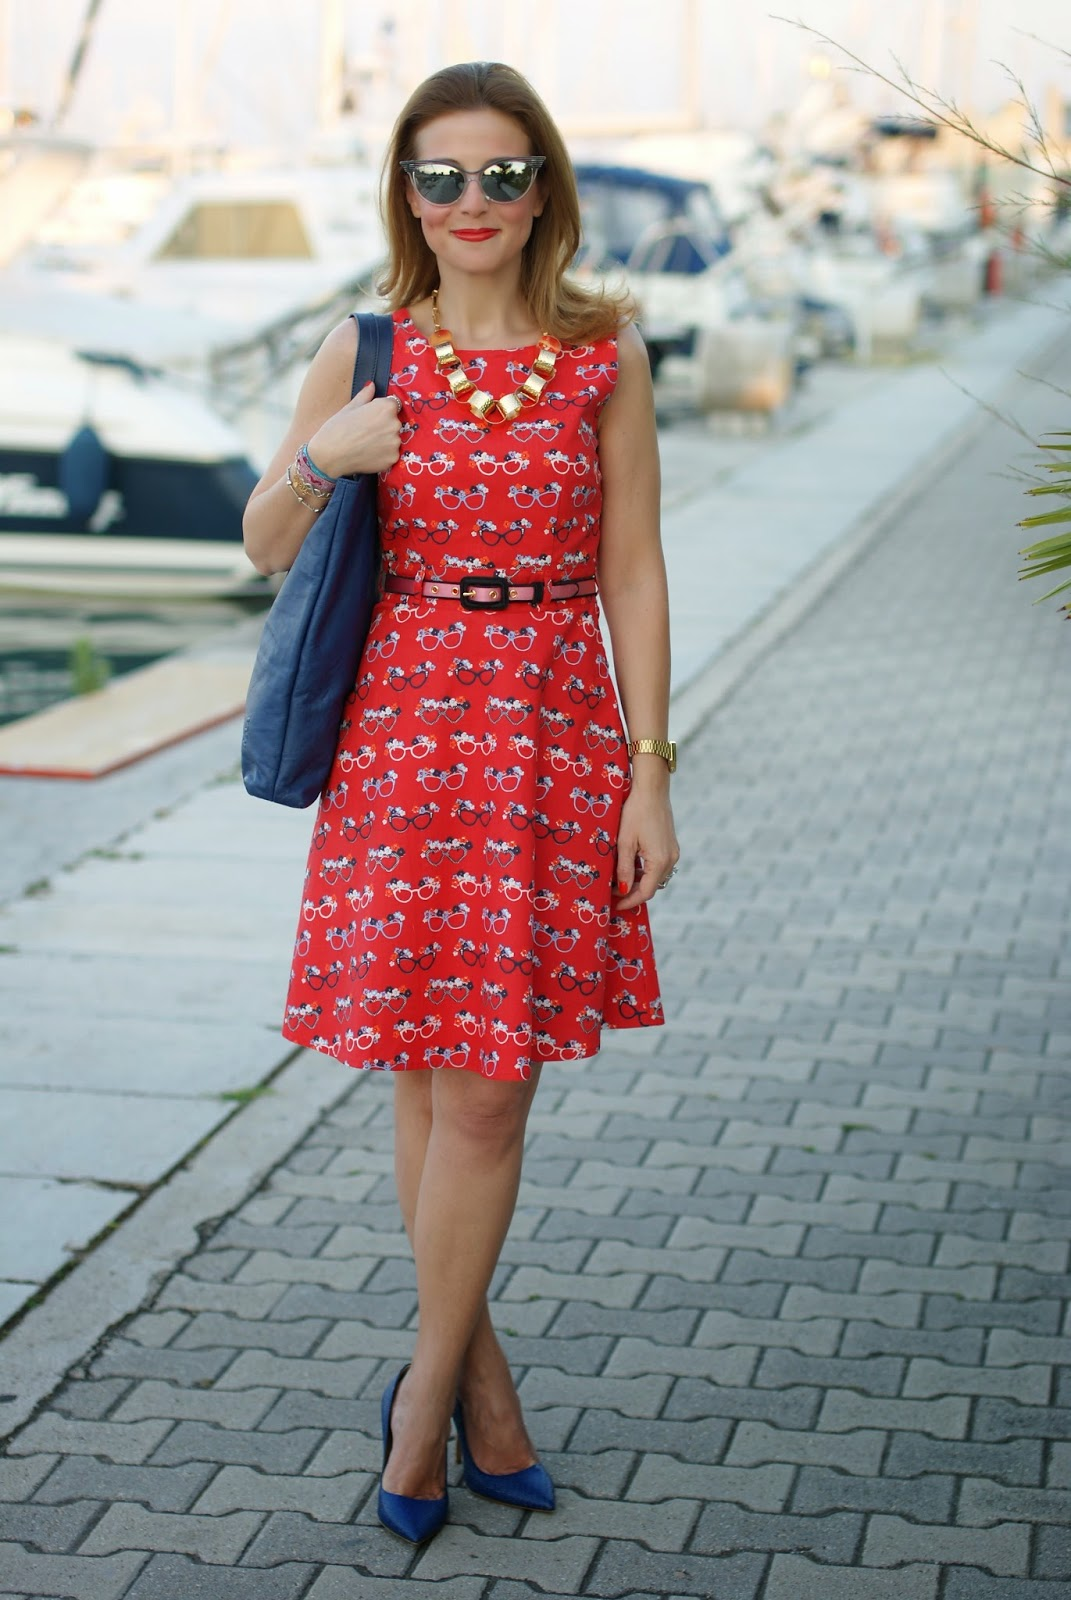 glasses print dress, sergio levantesi shoes, vitti ferria contin necklace, Fashion and Cookies, fashion blogger